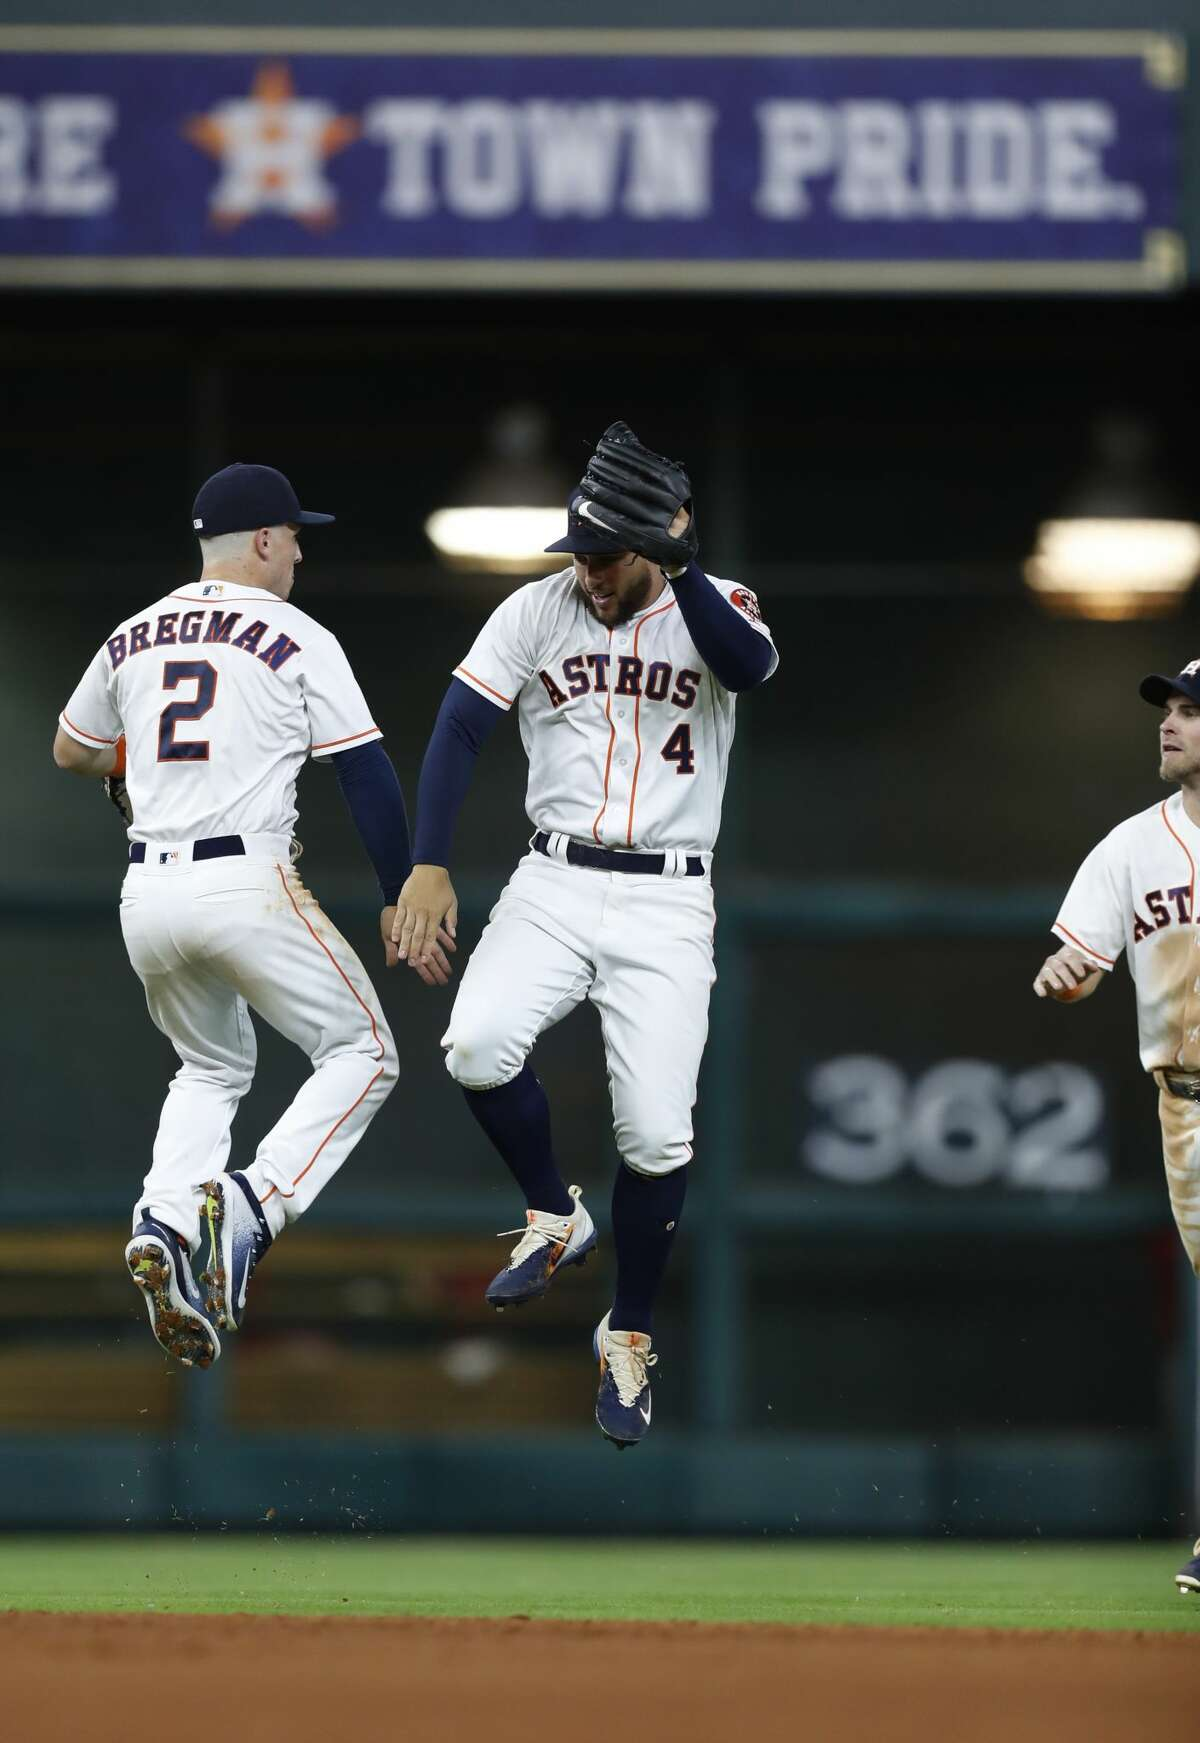 Houston Astros shortstop Alex Bregman (2) and George Springer (4) celebrate the Astros 5-1 win after an MLB baseball game at Minute Maid Park, Wednesday, April 19, 2017, in Houston. ( Karen Warren / Houston Chronicle )